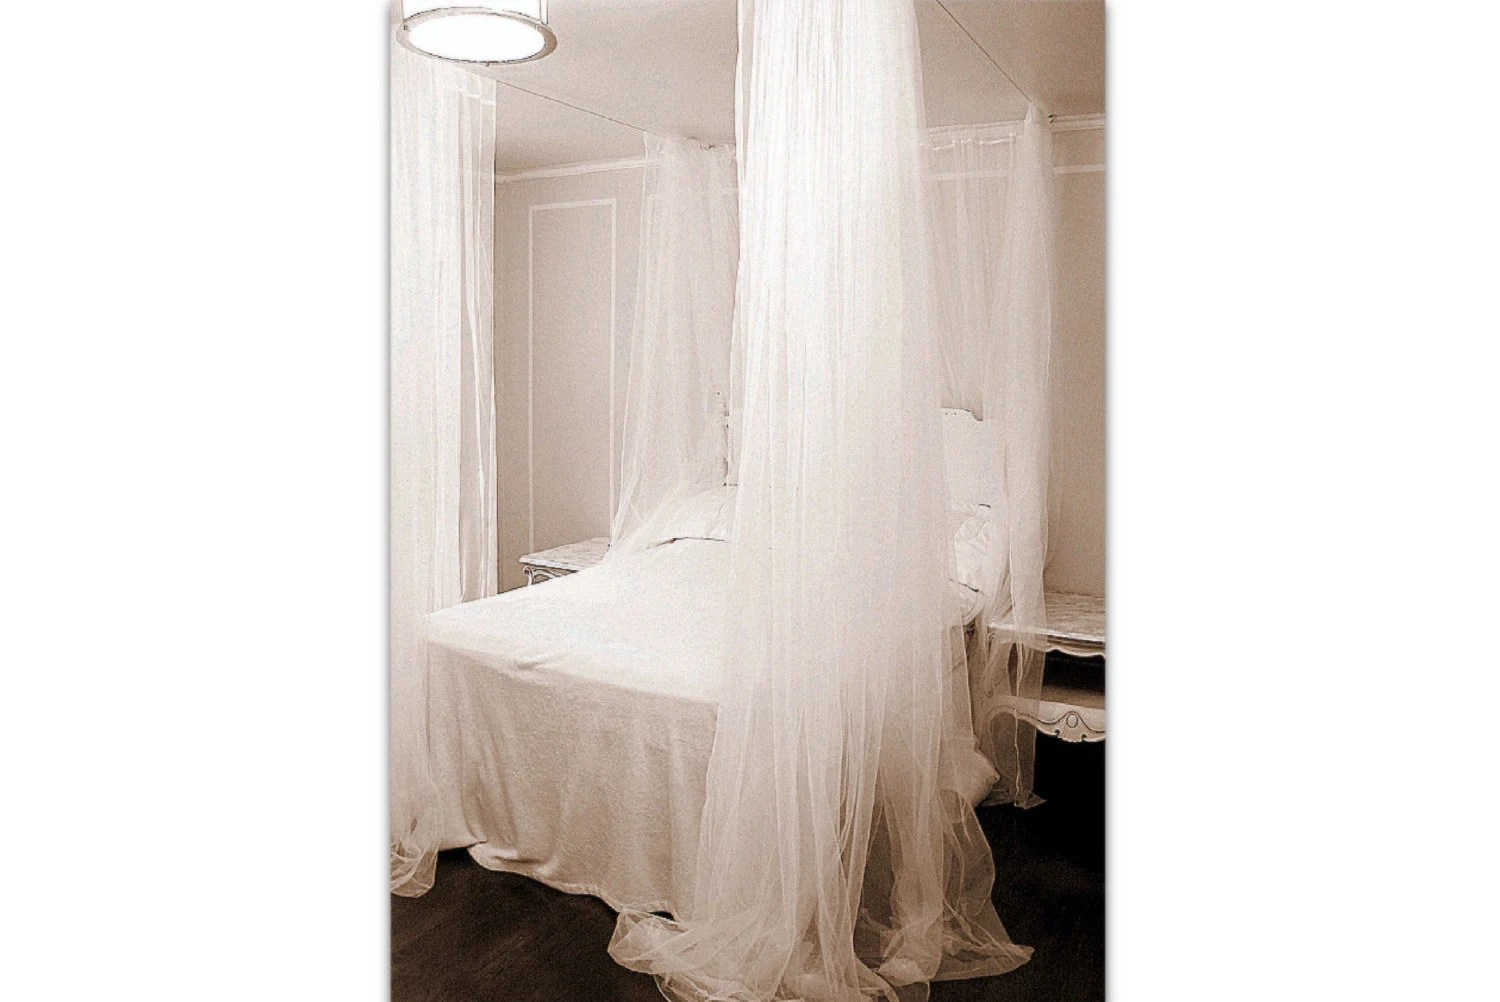 queen size bed canopy curtains diy sheer shabby and chic white lace bed panels bohemian custom bedroom drapery tulle princess canopy